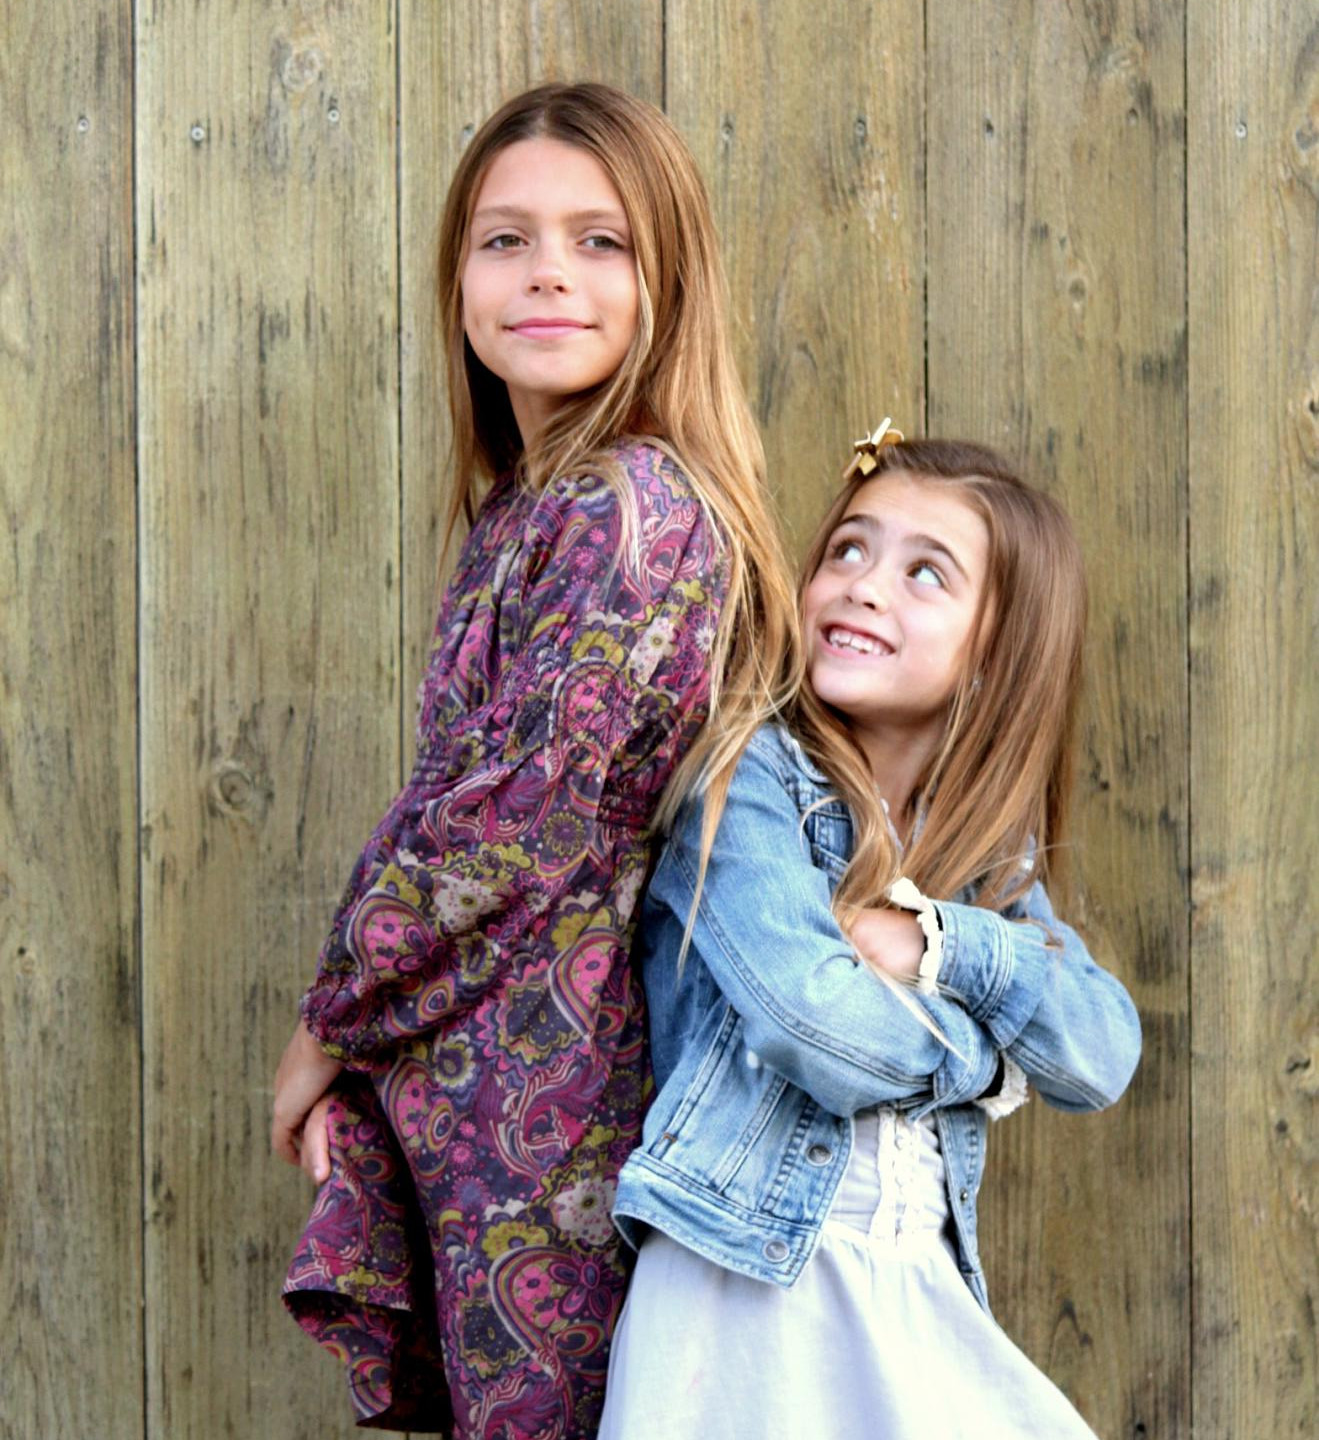 Sisters with hearing loss